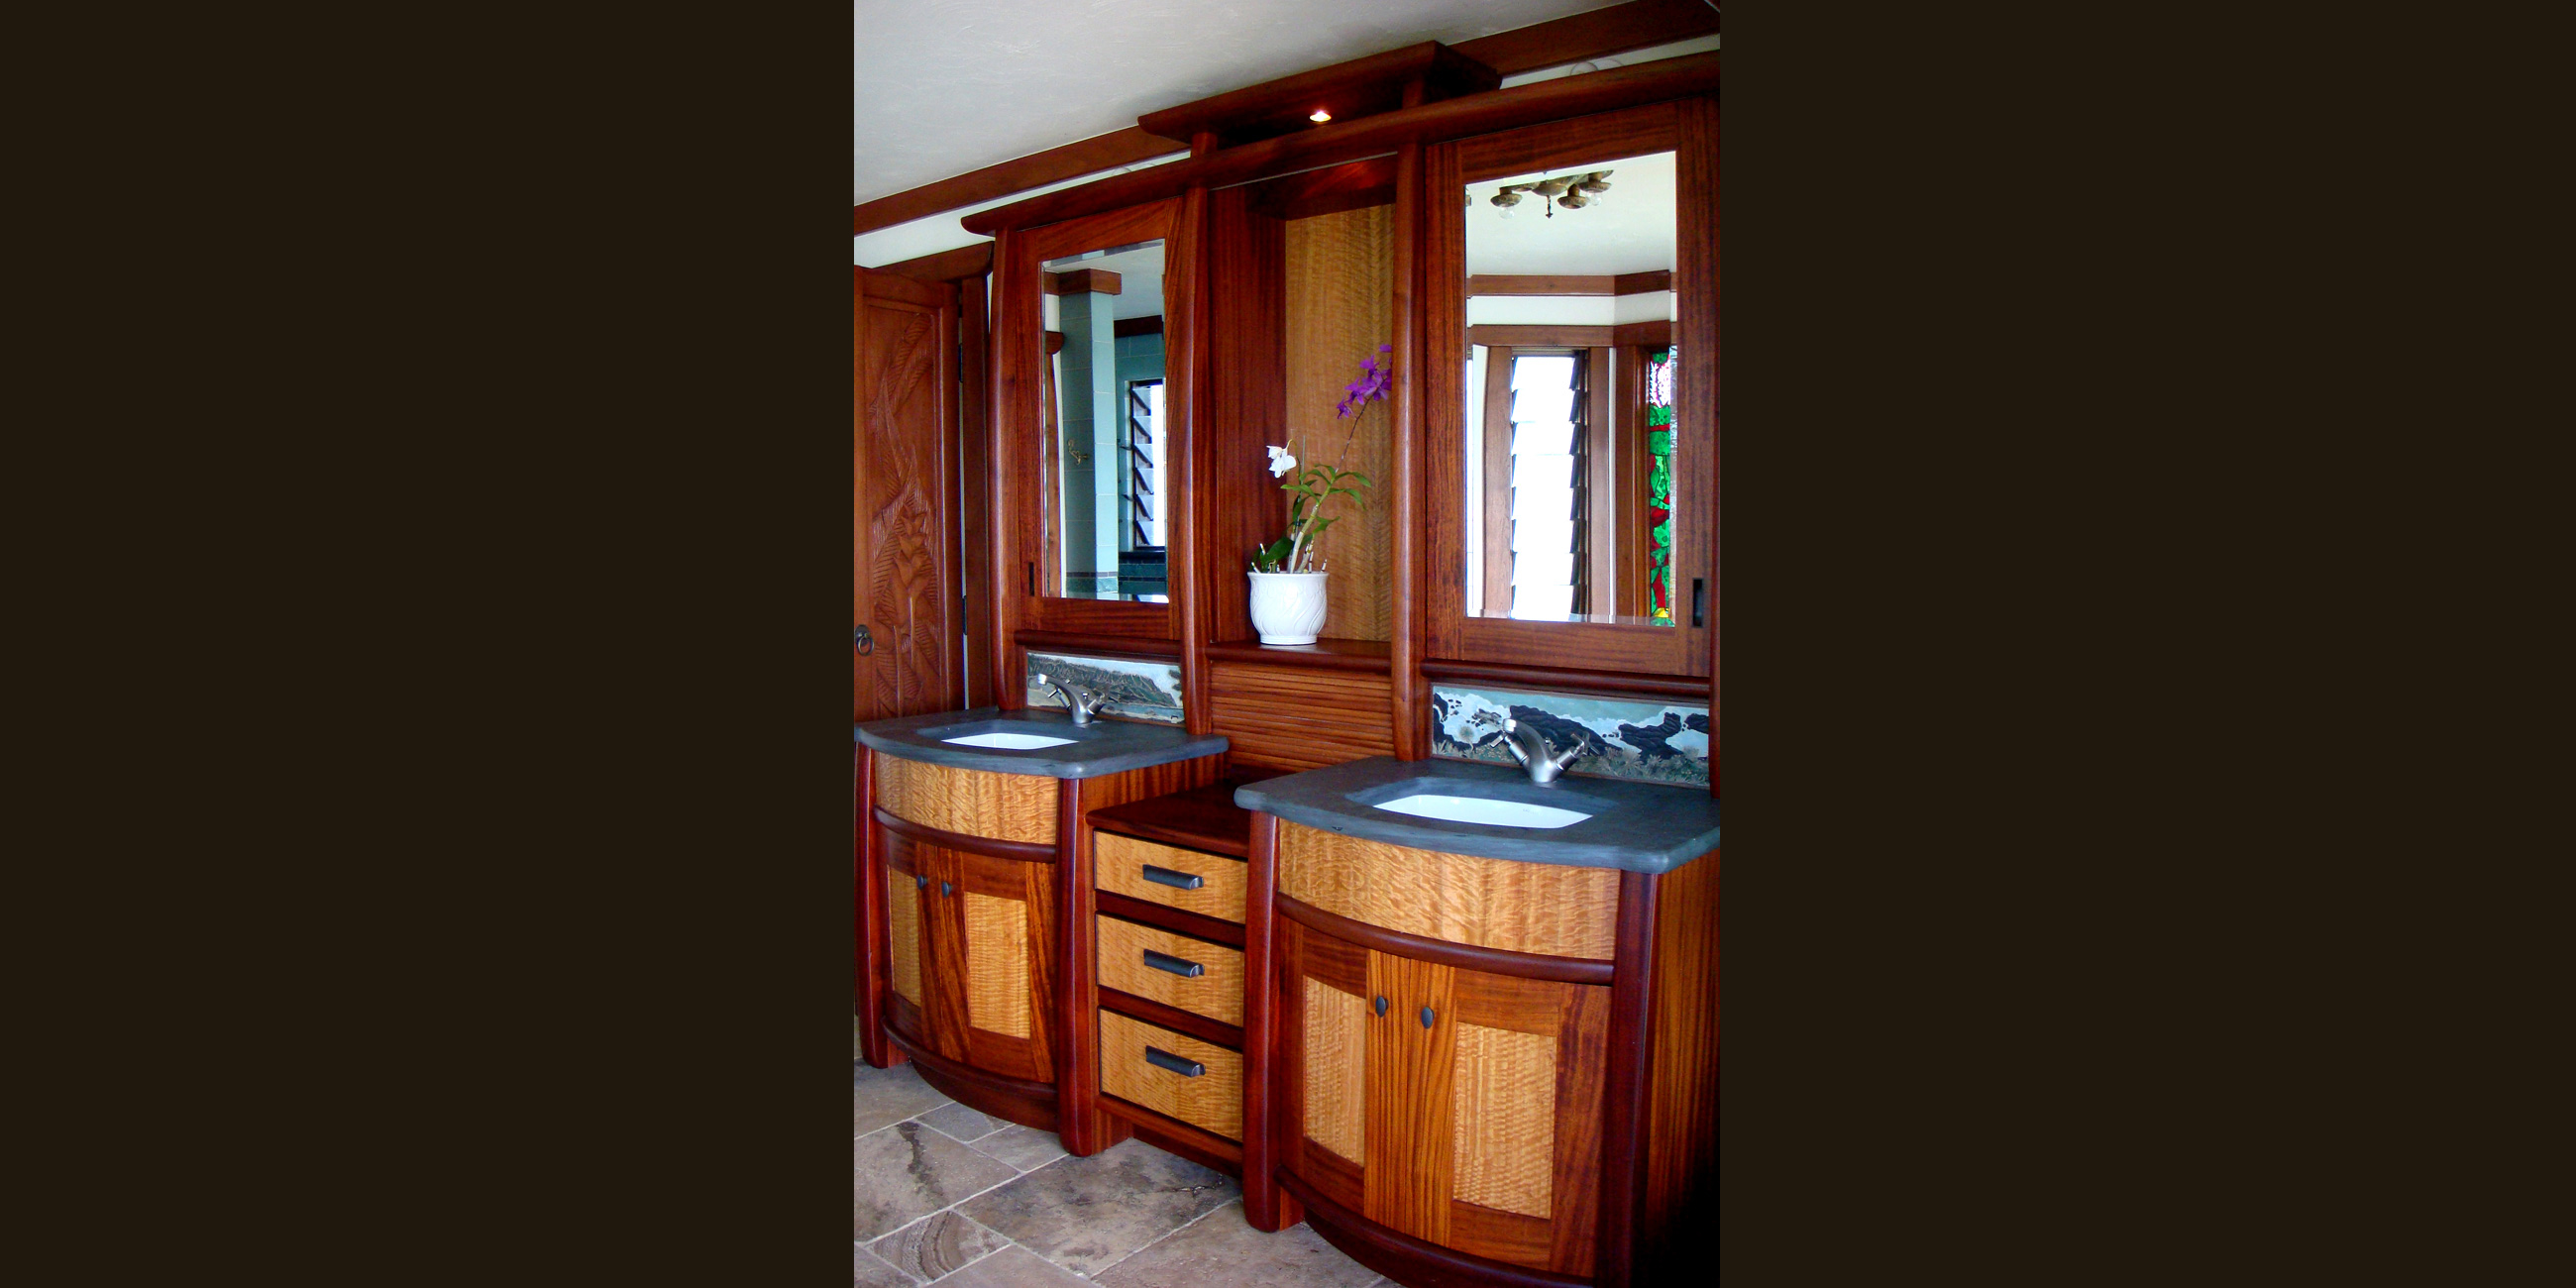 72_kauai_bathroom_home_page_1109